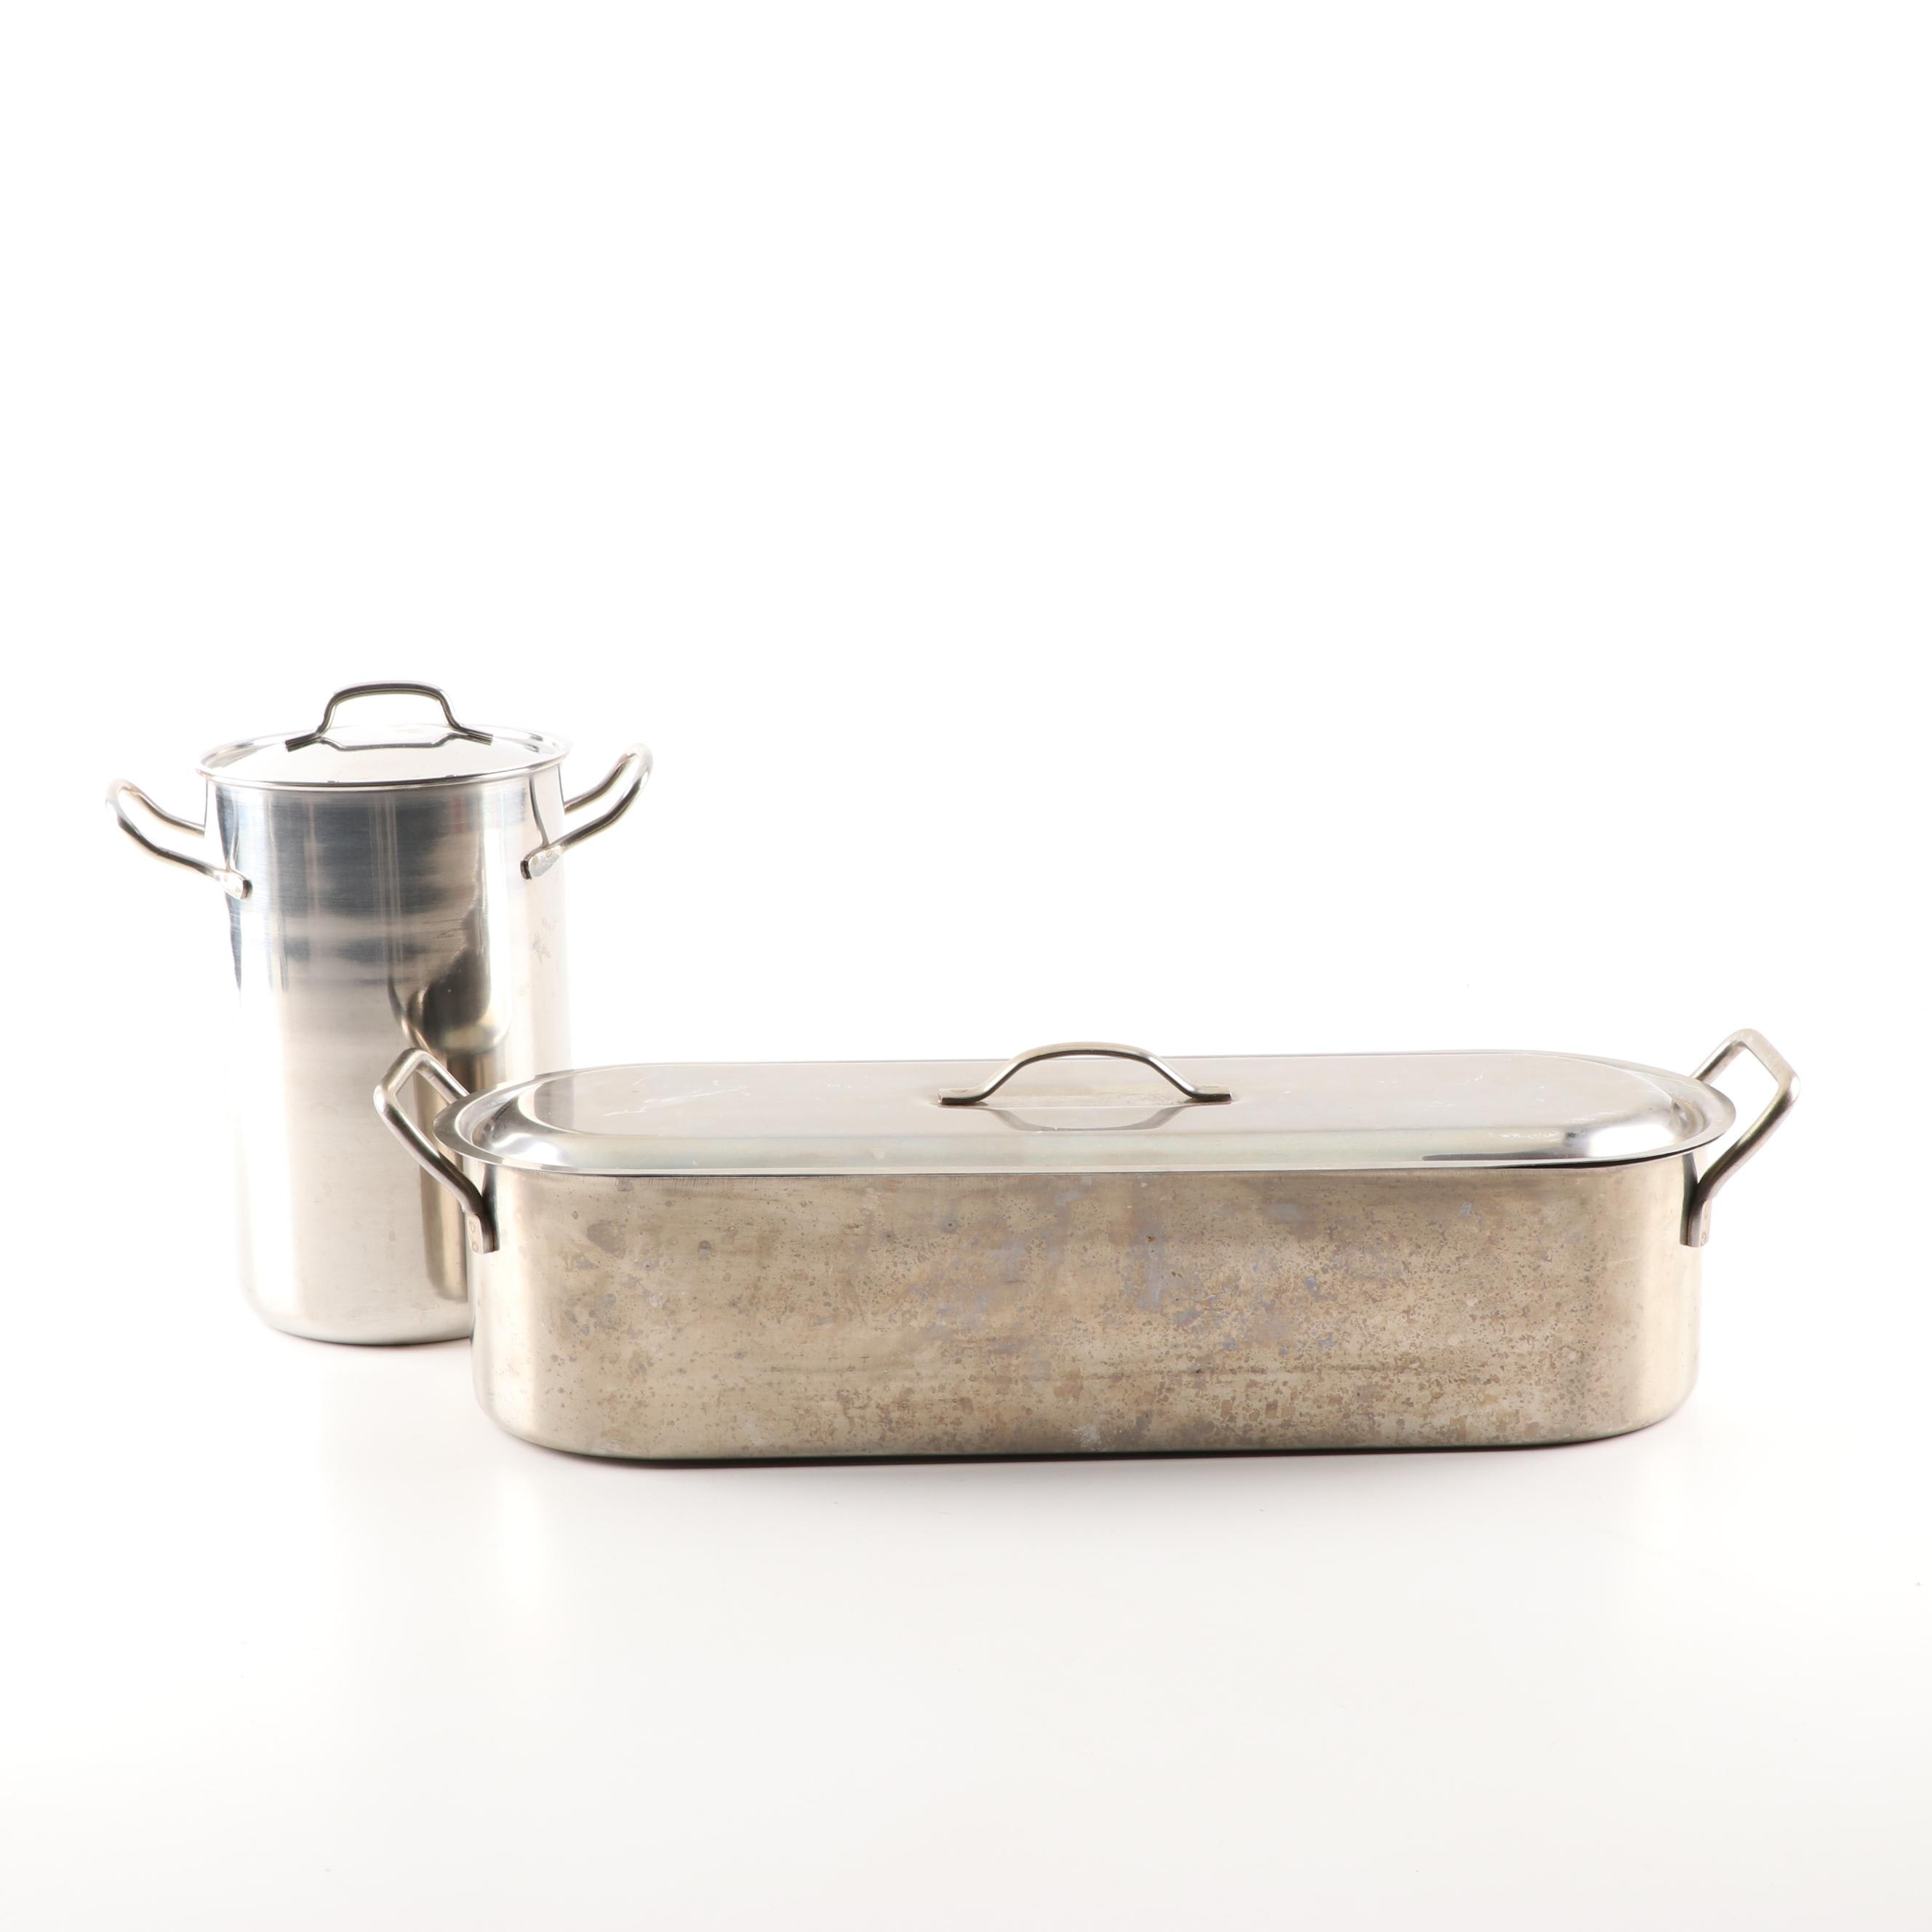 Stainless Steel Fish and Asparagus Steamers